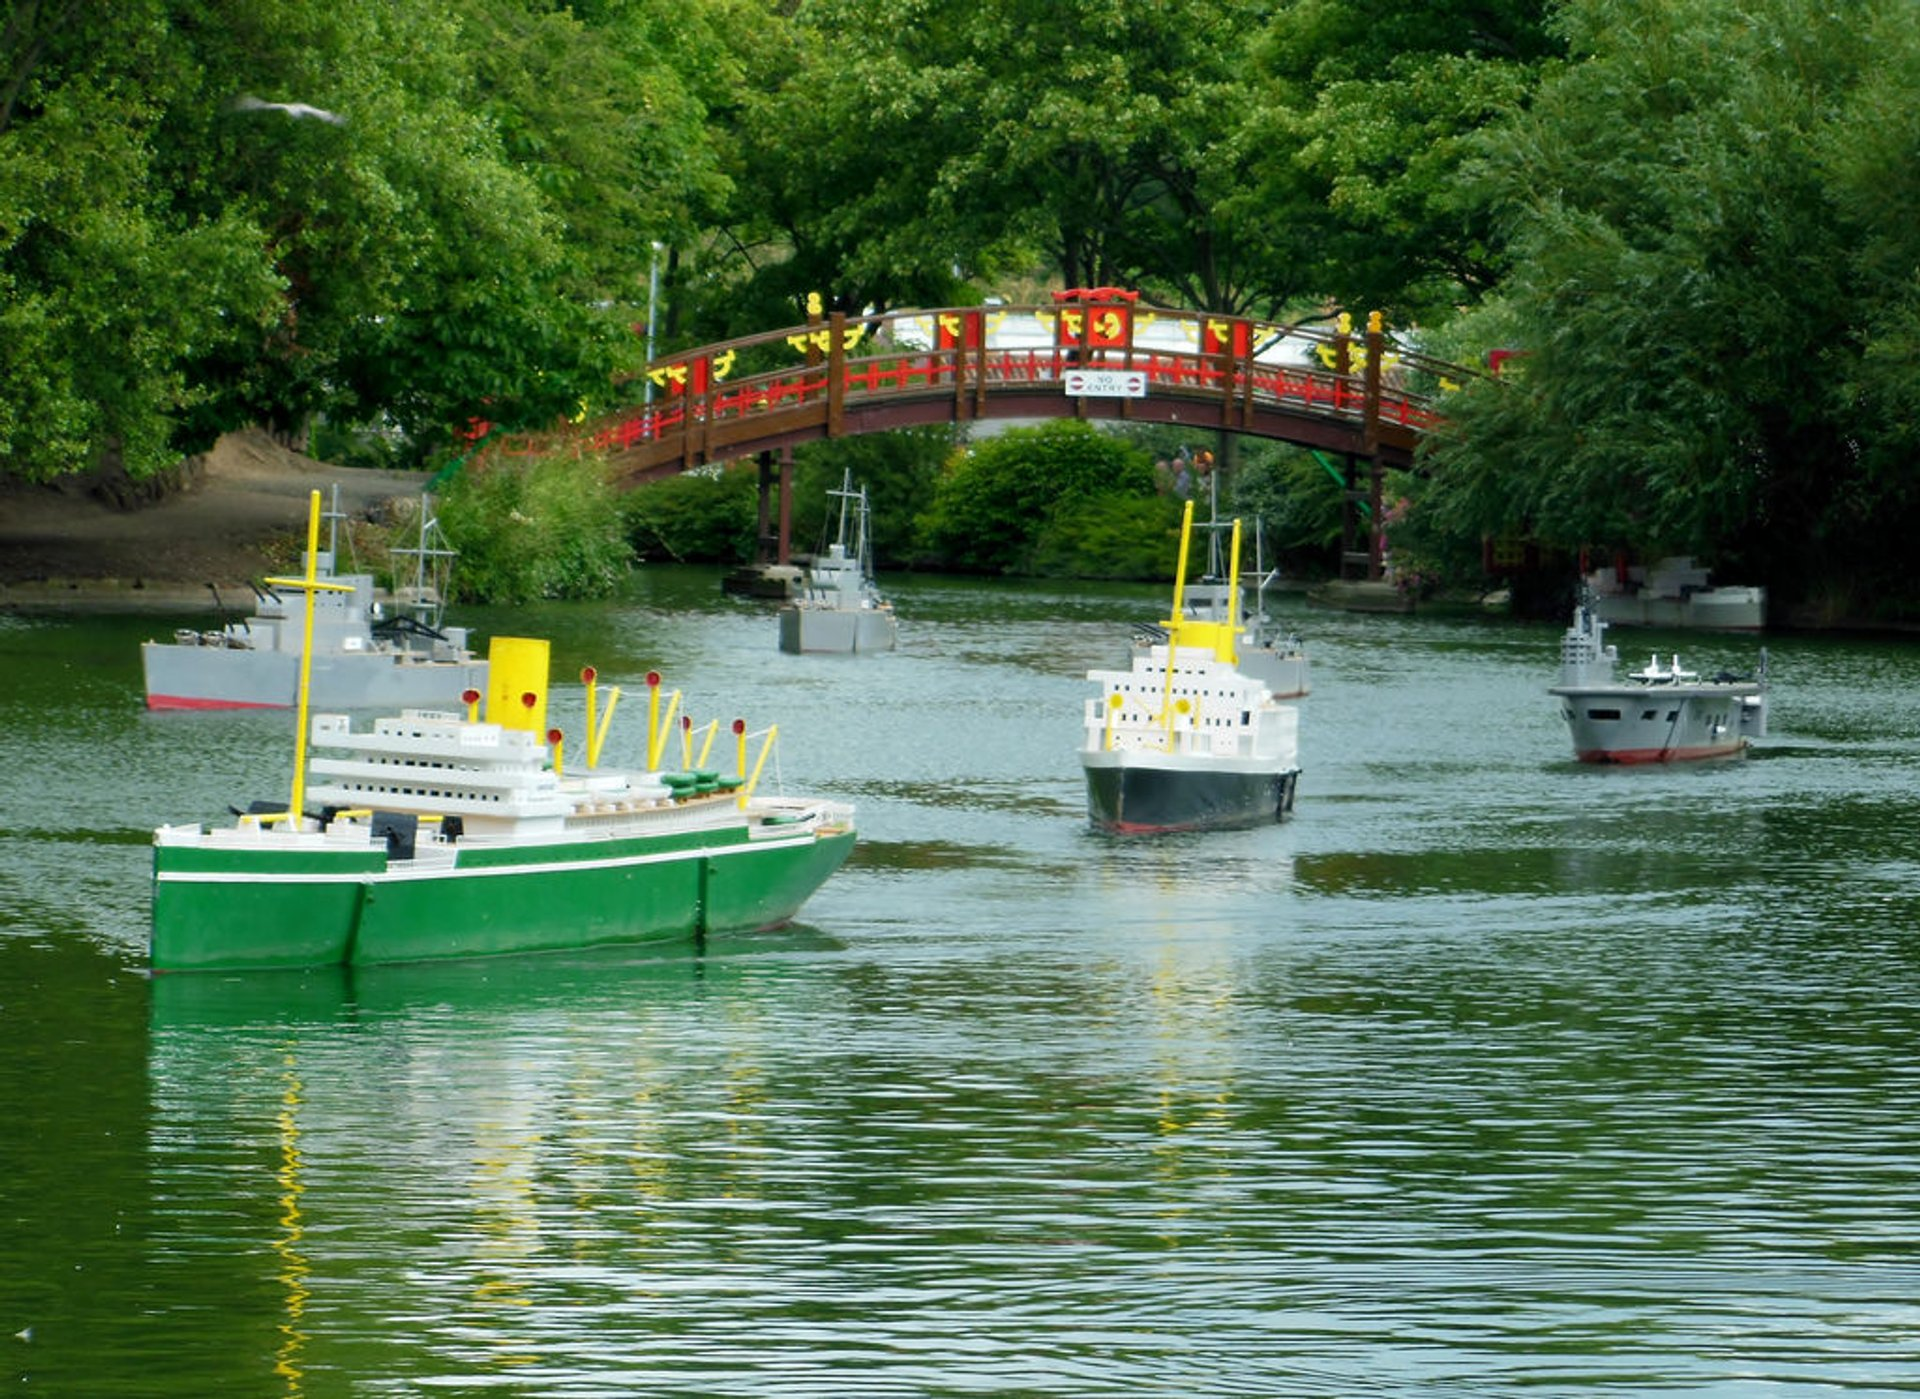 Peasholm Park Naval Battles in England - Best Season 2019